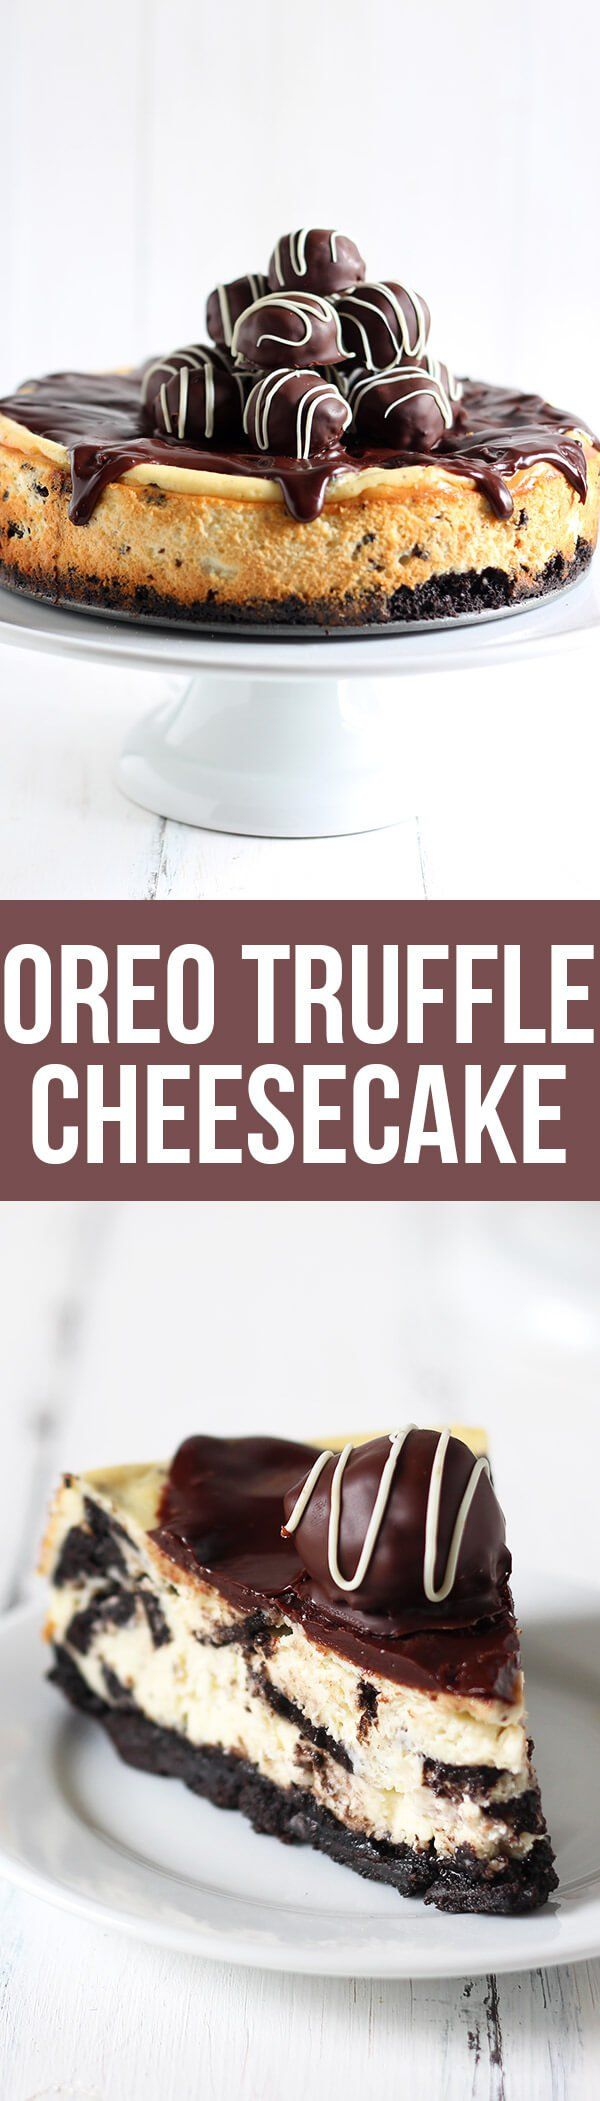 Oreo Truffle Cheesecake - Handle the Heat